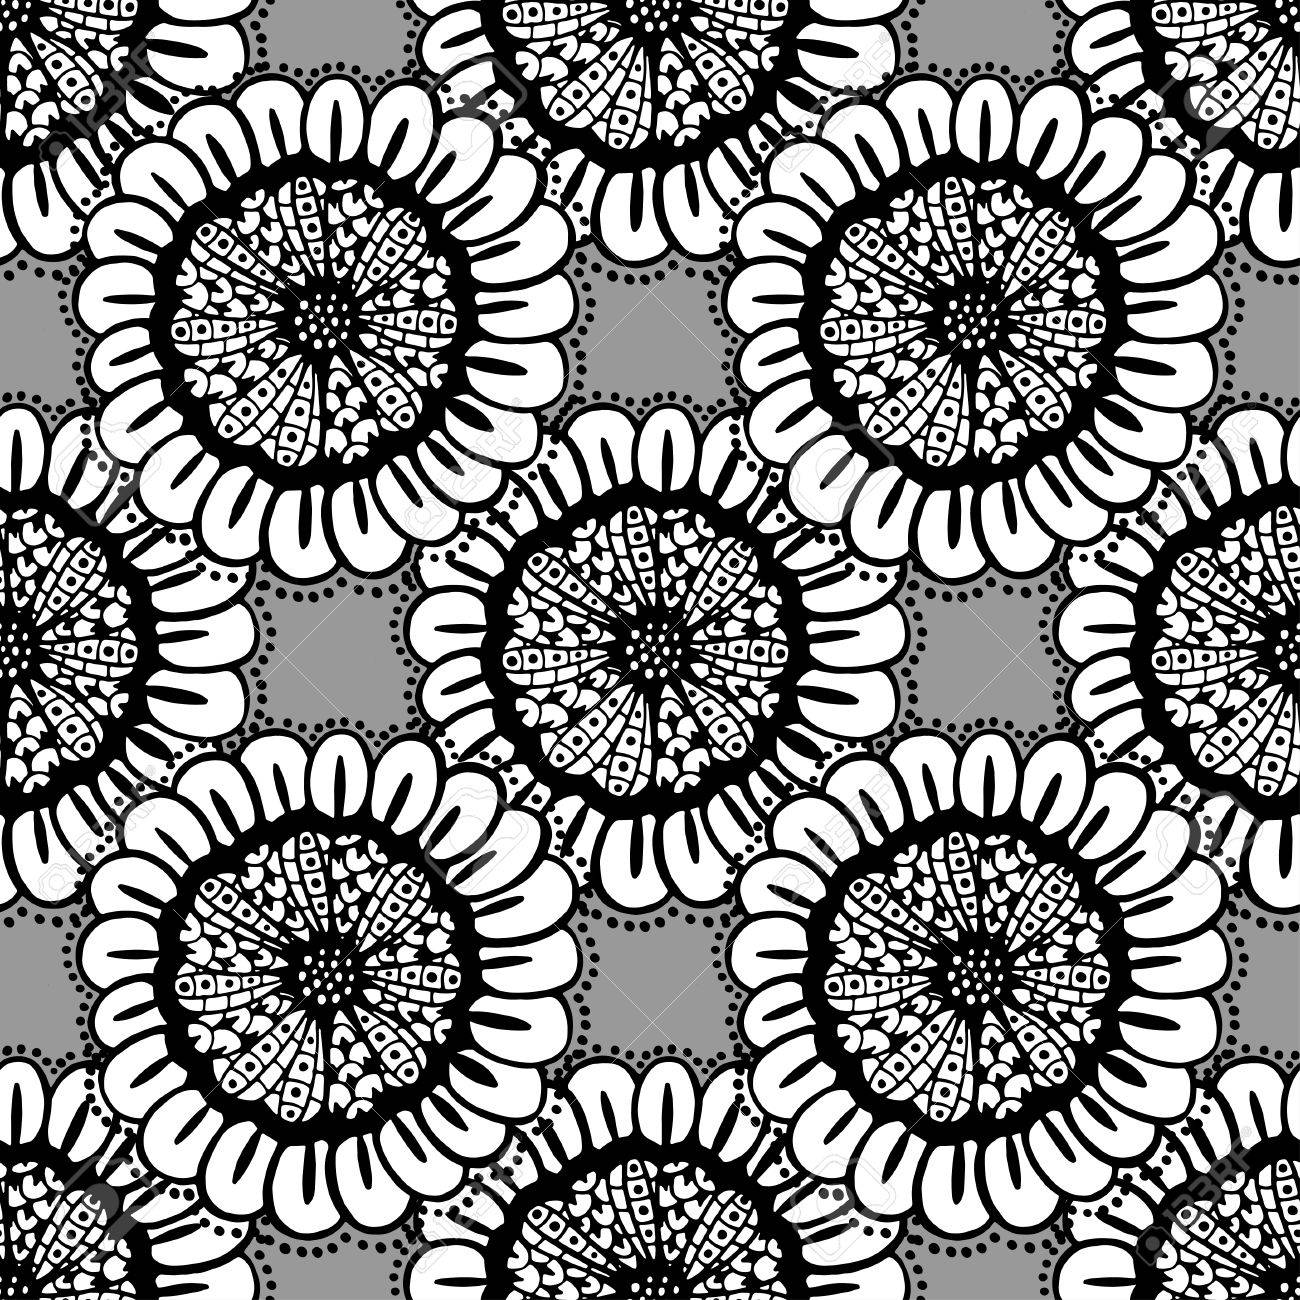 Black And White Background Coloring Book Sunflower Zentangle Seamless Floral Doodle Pattern In Vector Design Asian Ethnic Tribal